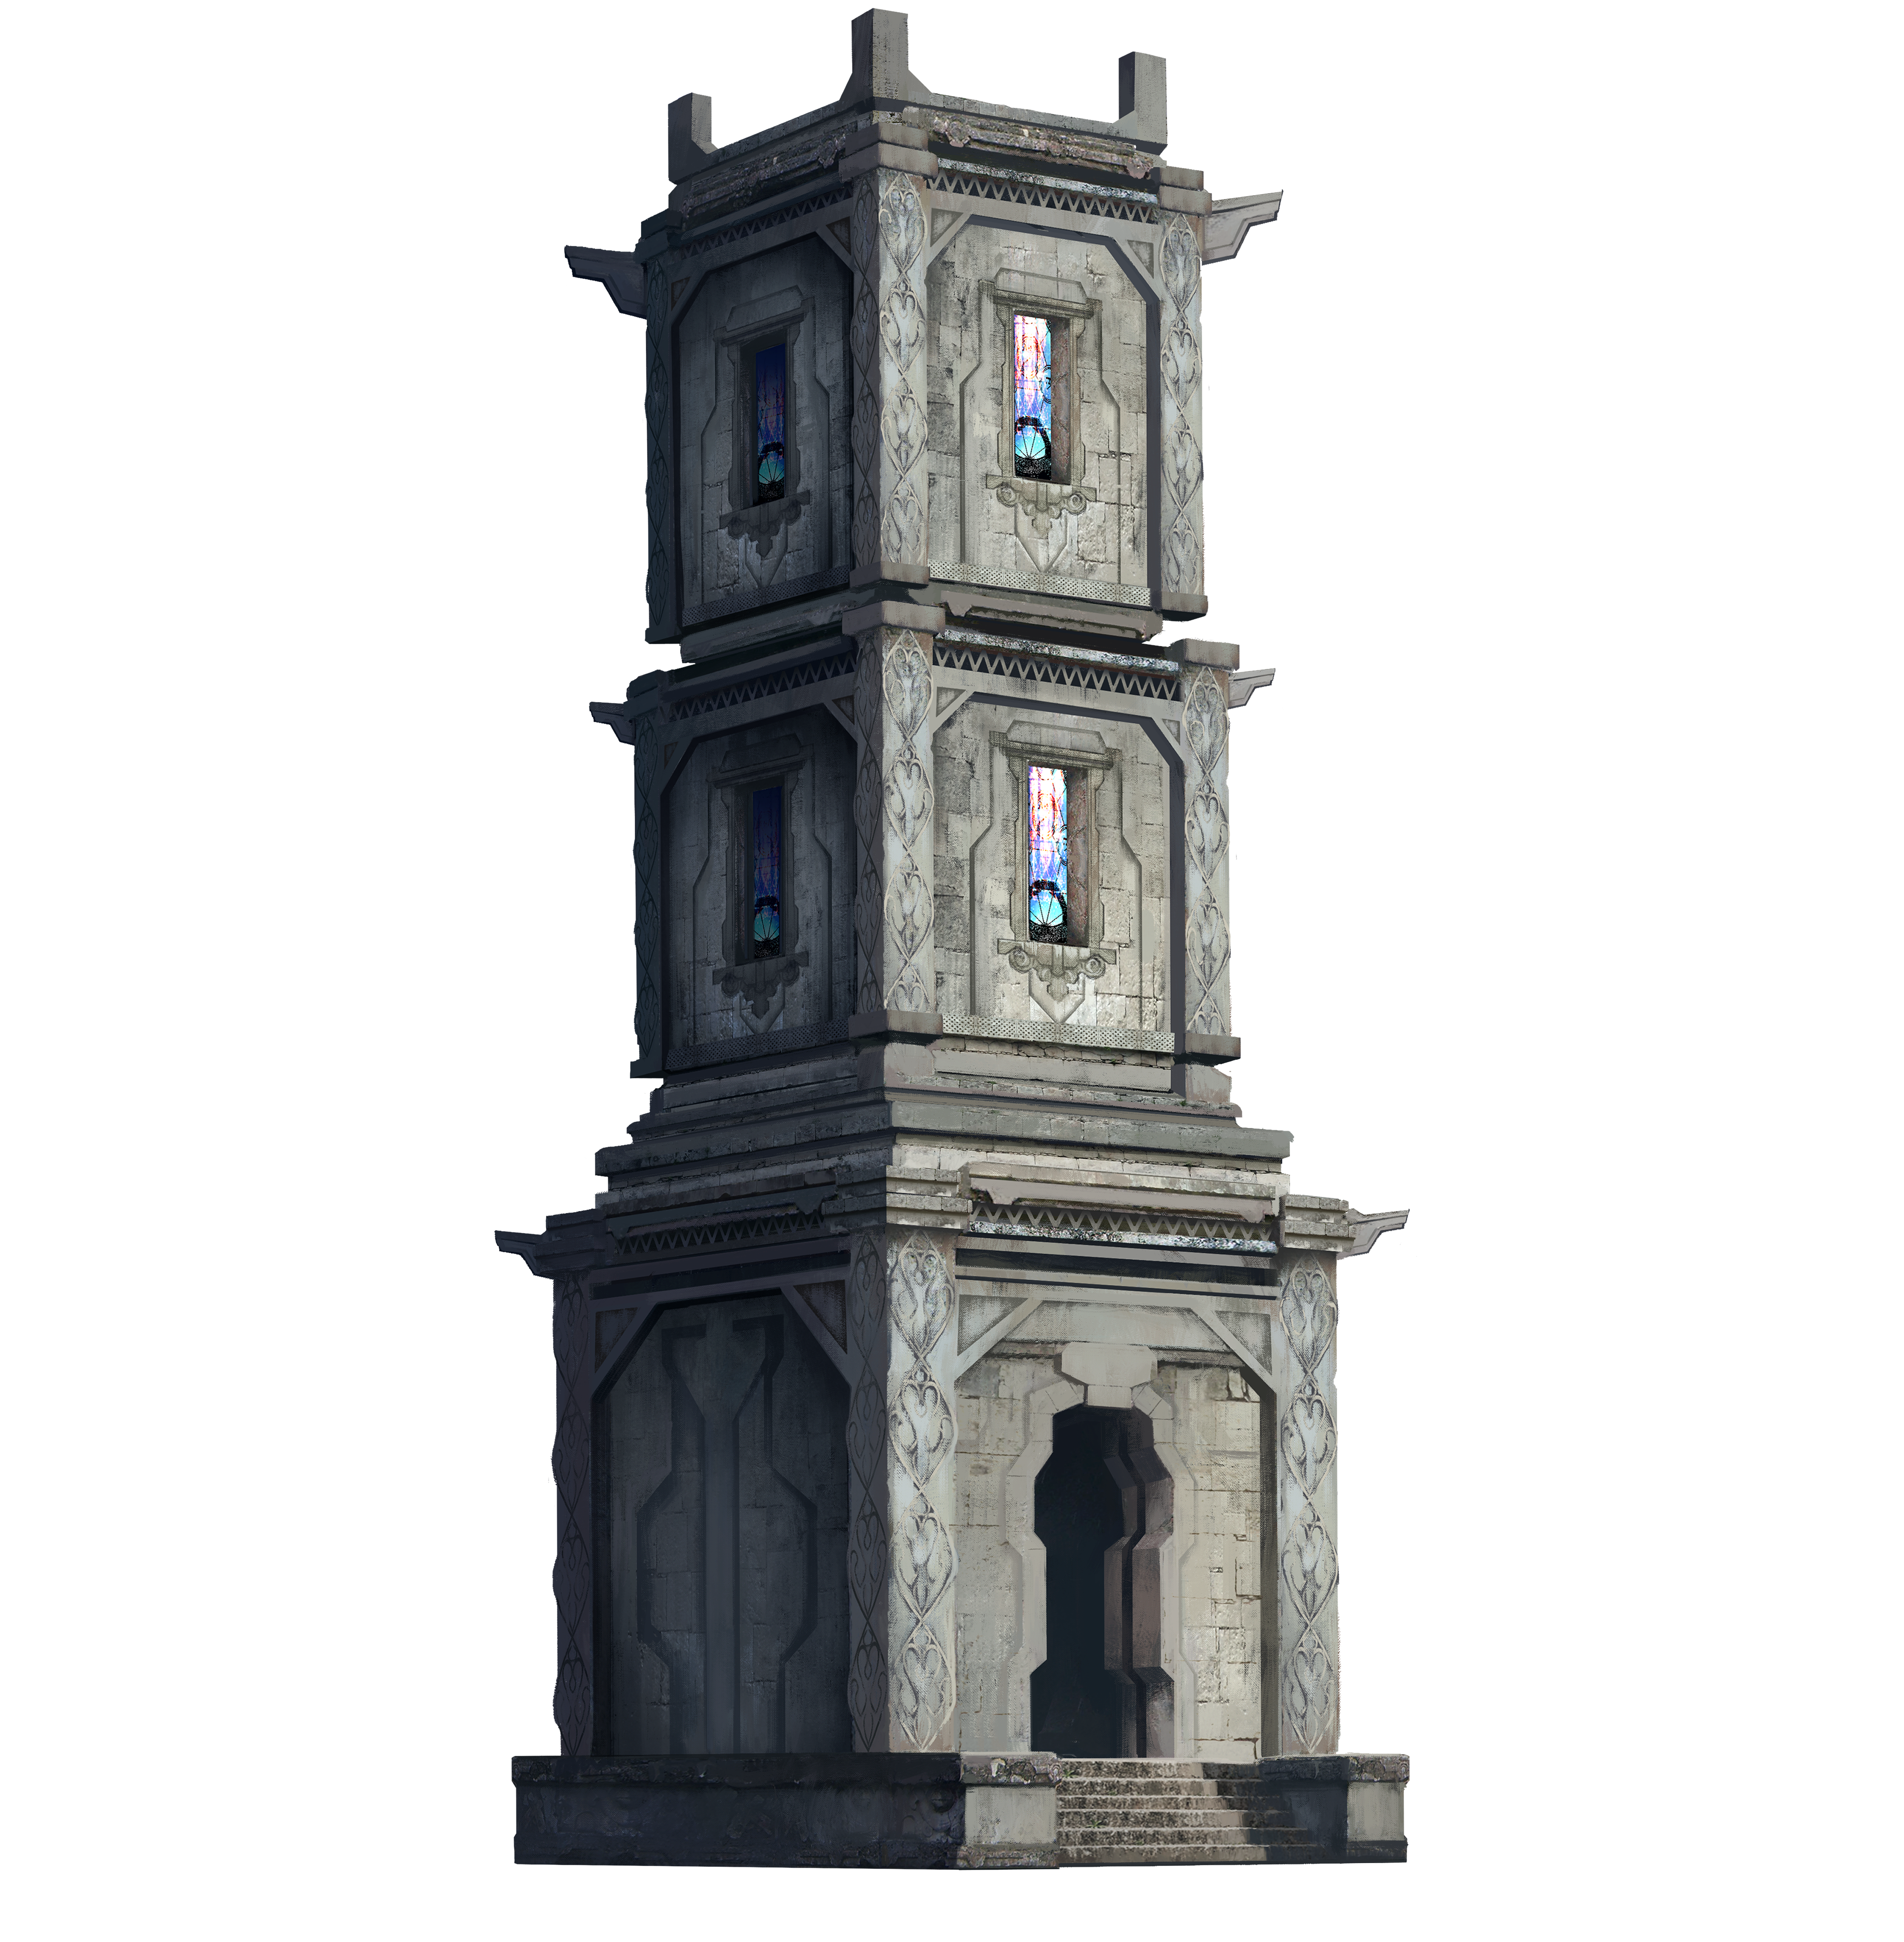 Monthly Cosmetics - 2019 - 4 - Building (1)